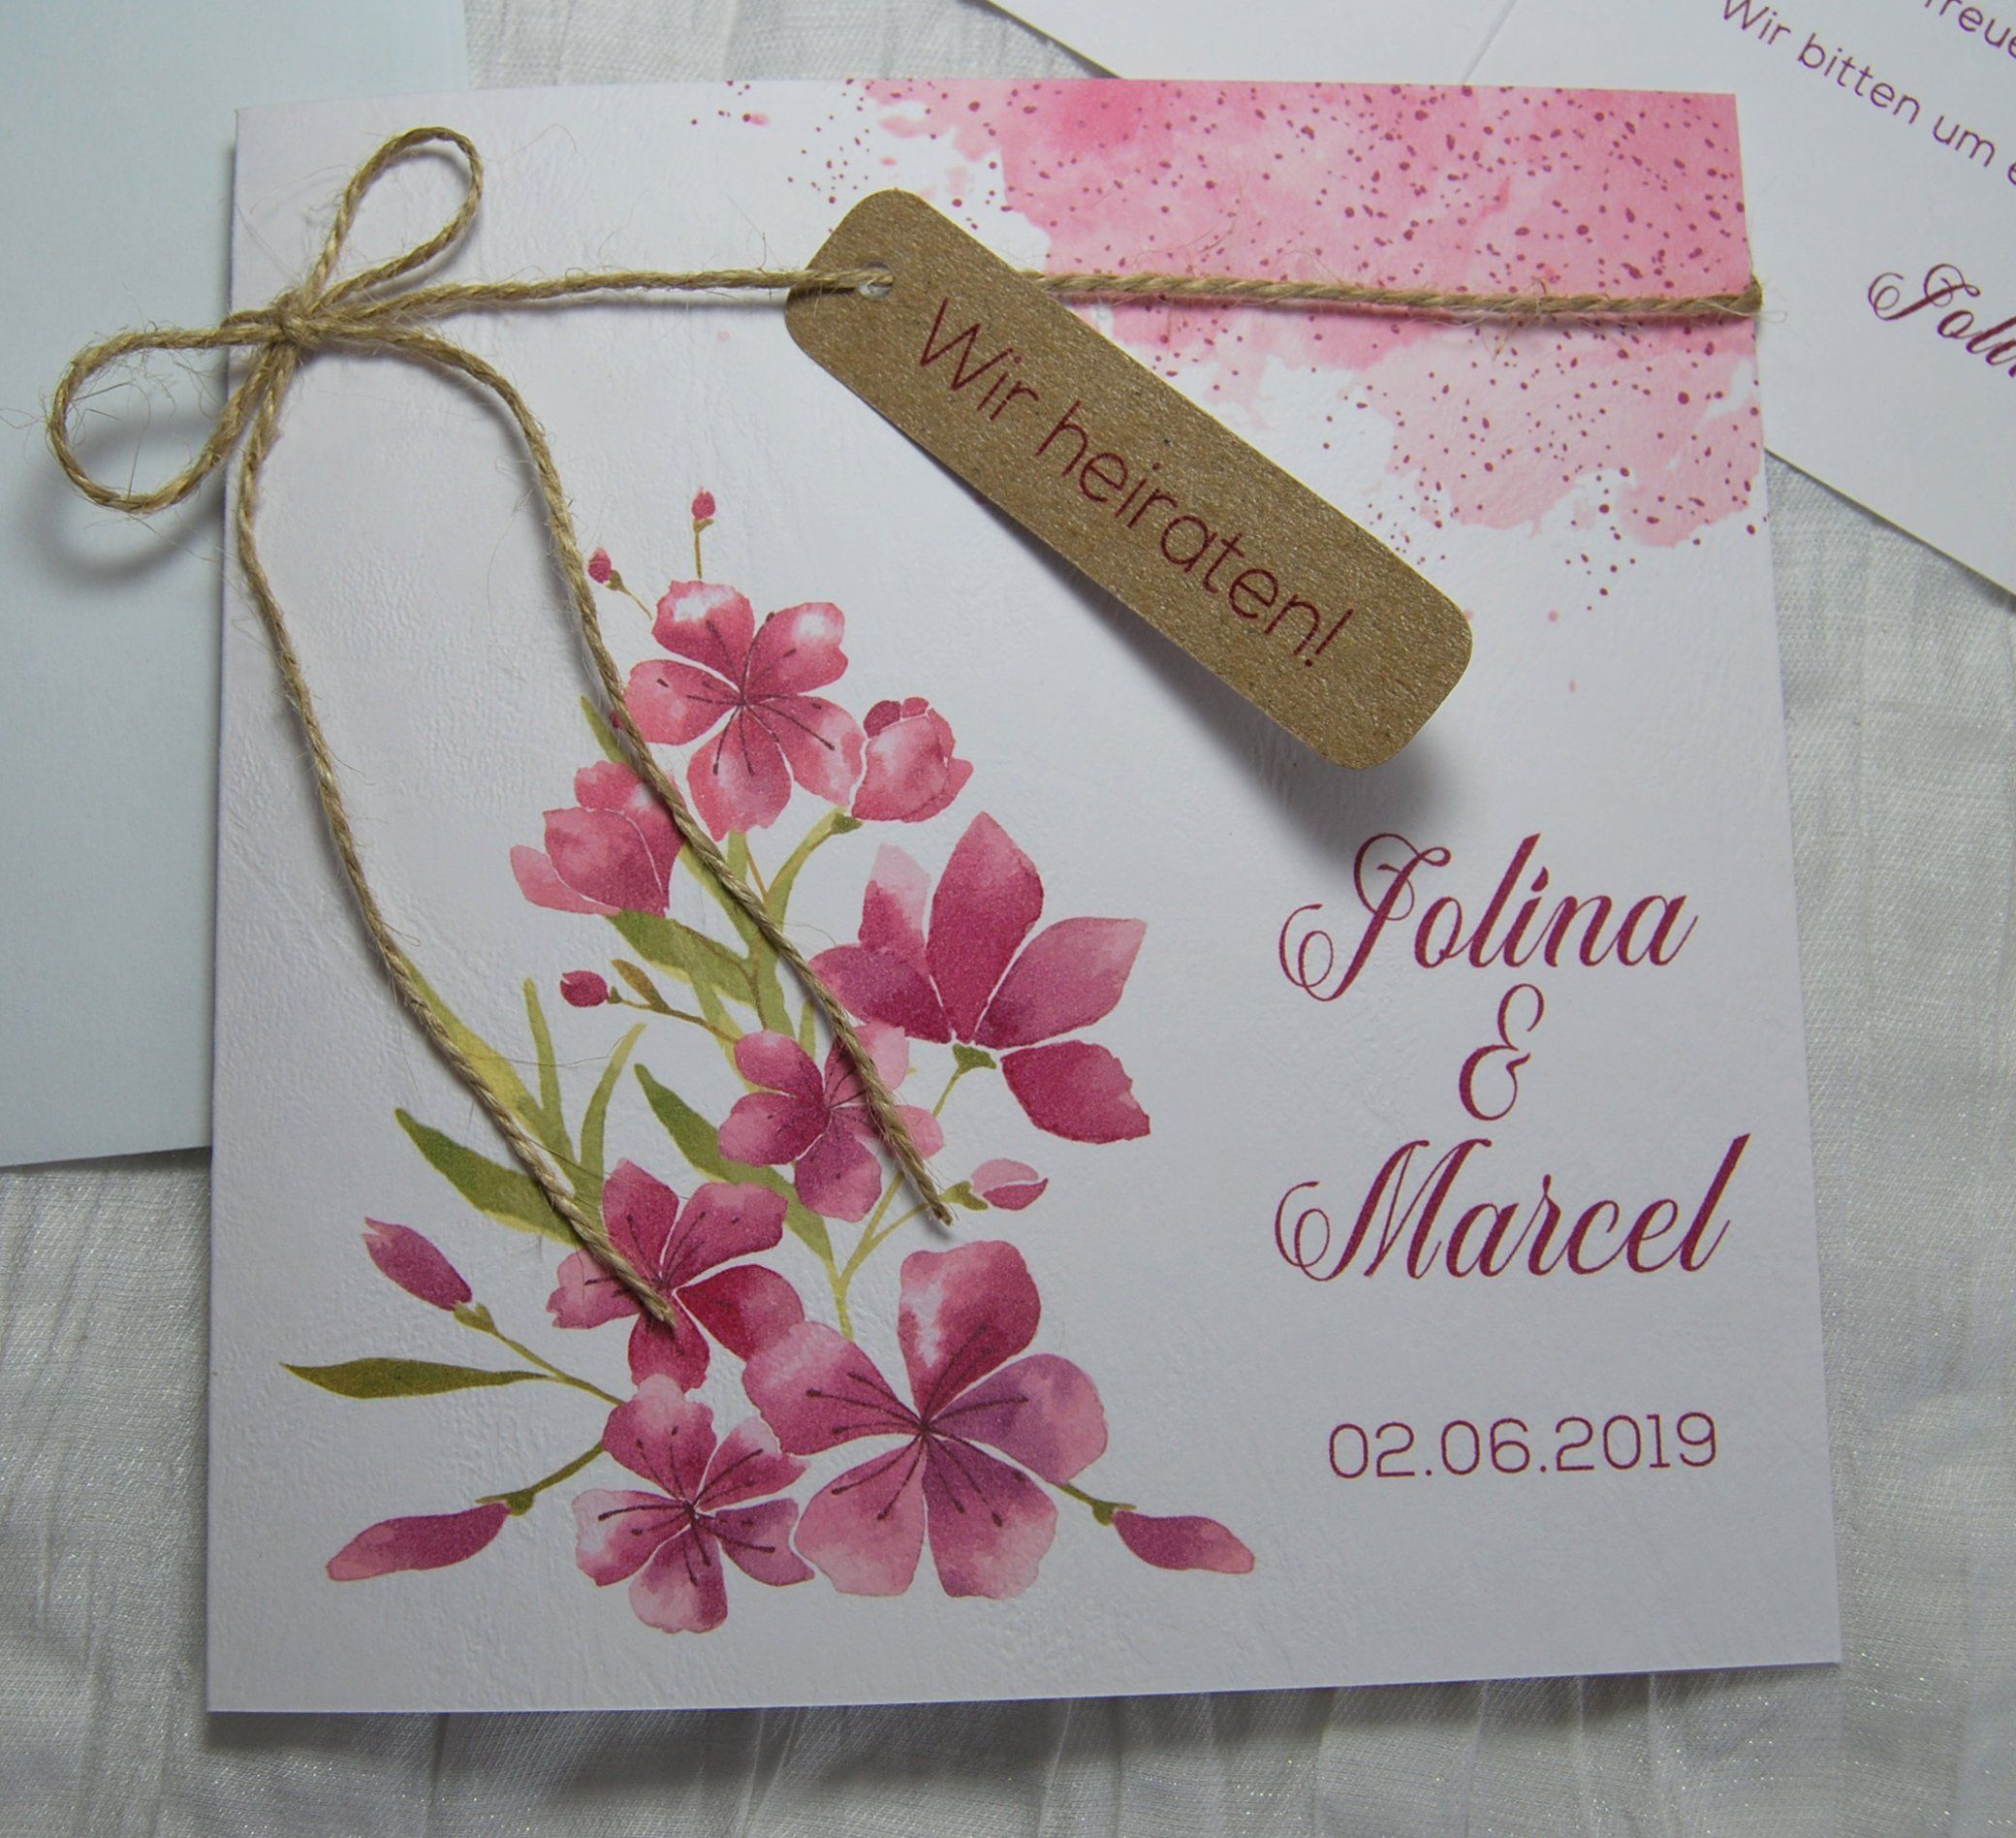 10x Hochzeitseinladung Kirschblute Cherry Blossom Floral Boho Blute Fruhling Einladung Zur Hochzeit Hochzeitskarte Karte Einladungskarte Wedding Invitation Cards Mountain Wedding Invitations Wedding Invitations